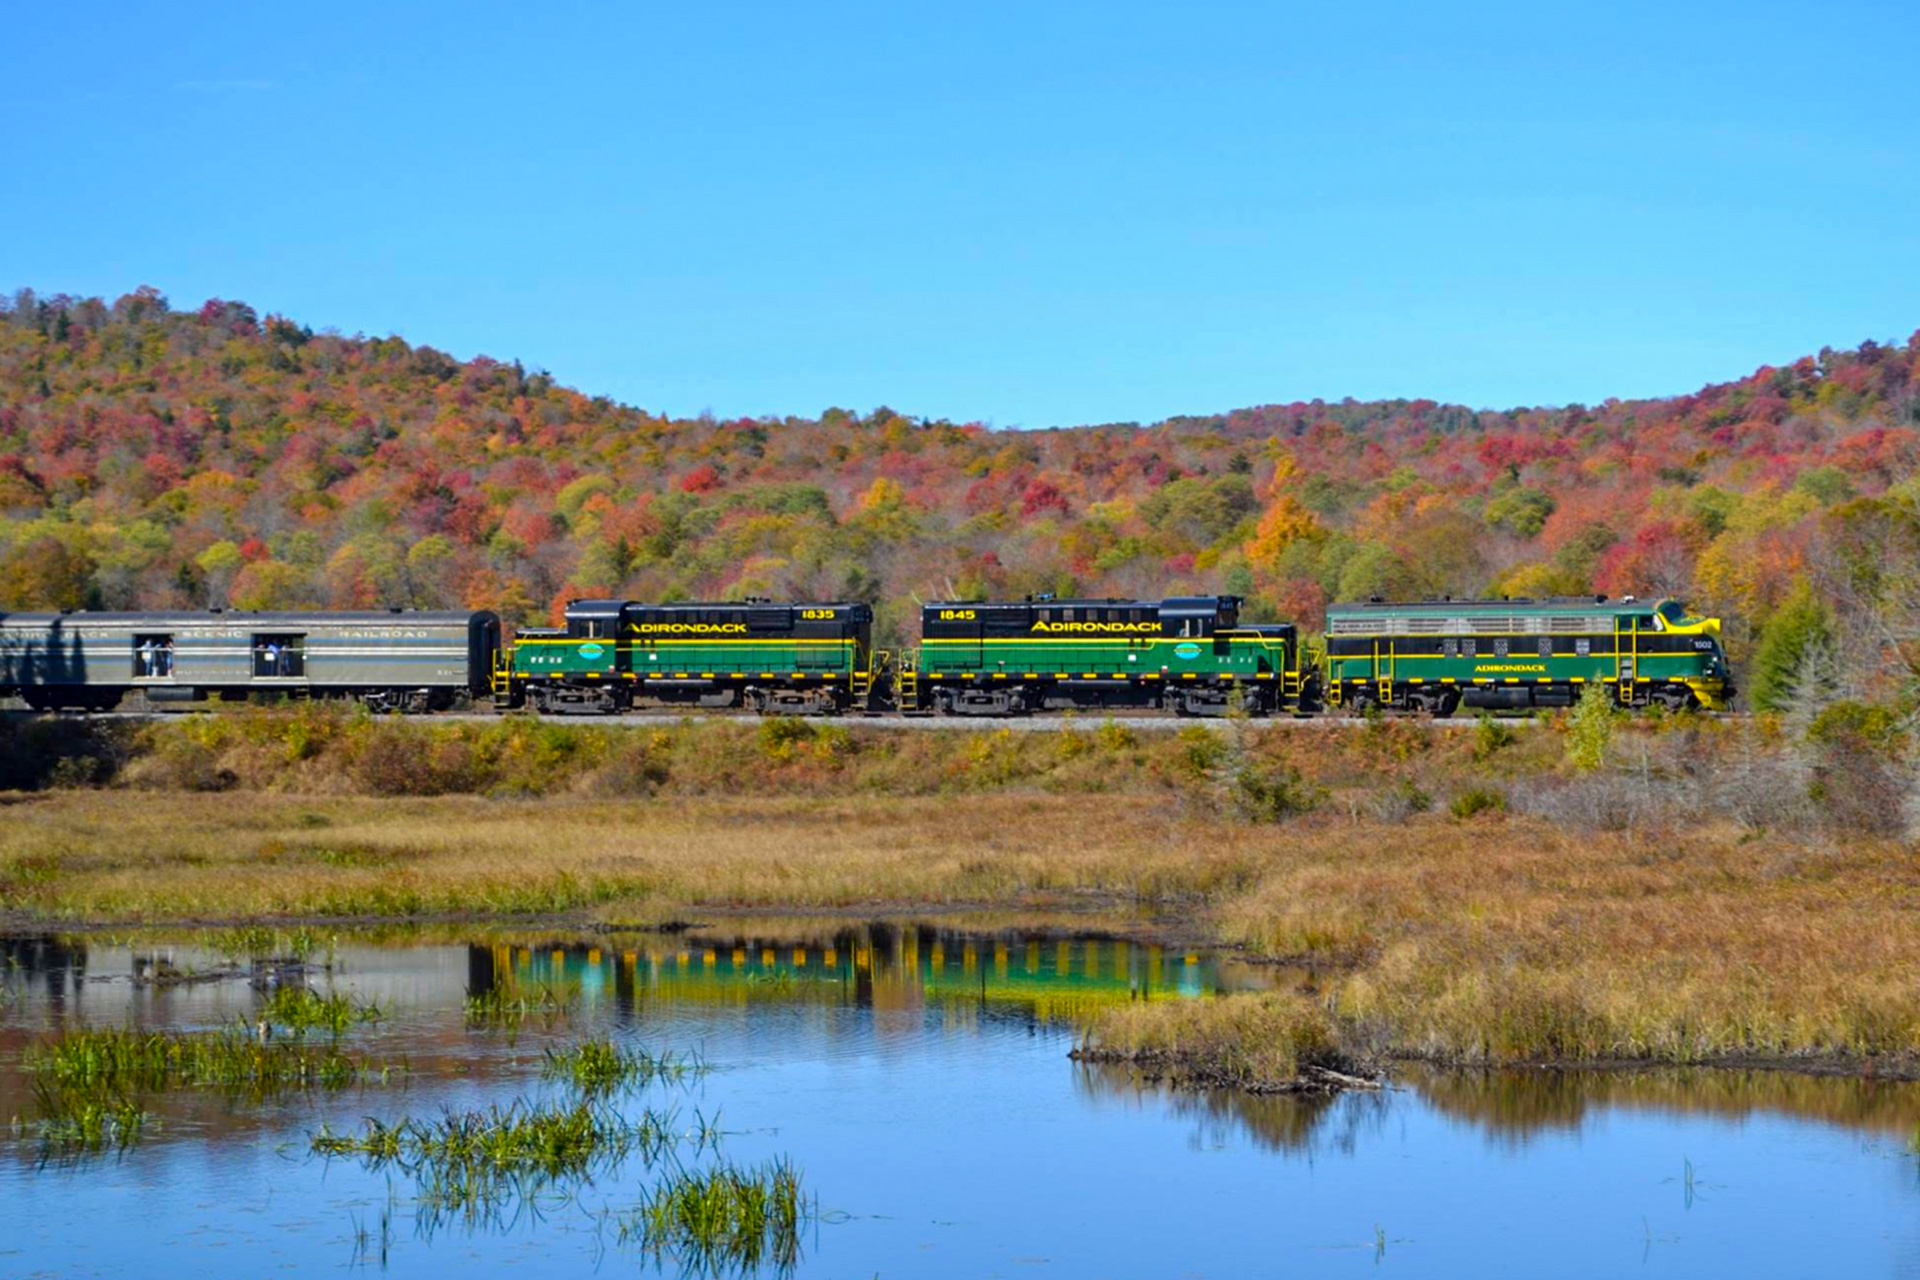 The Adirondack Scenic Beer & Wine Train